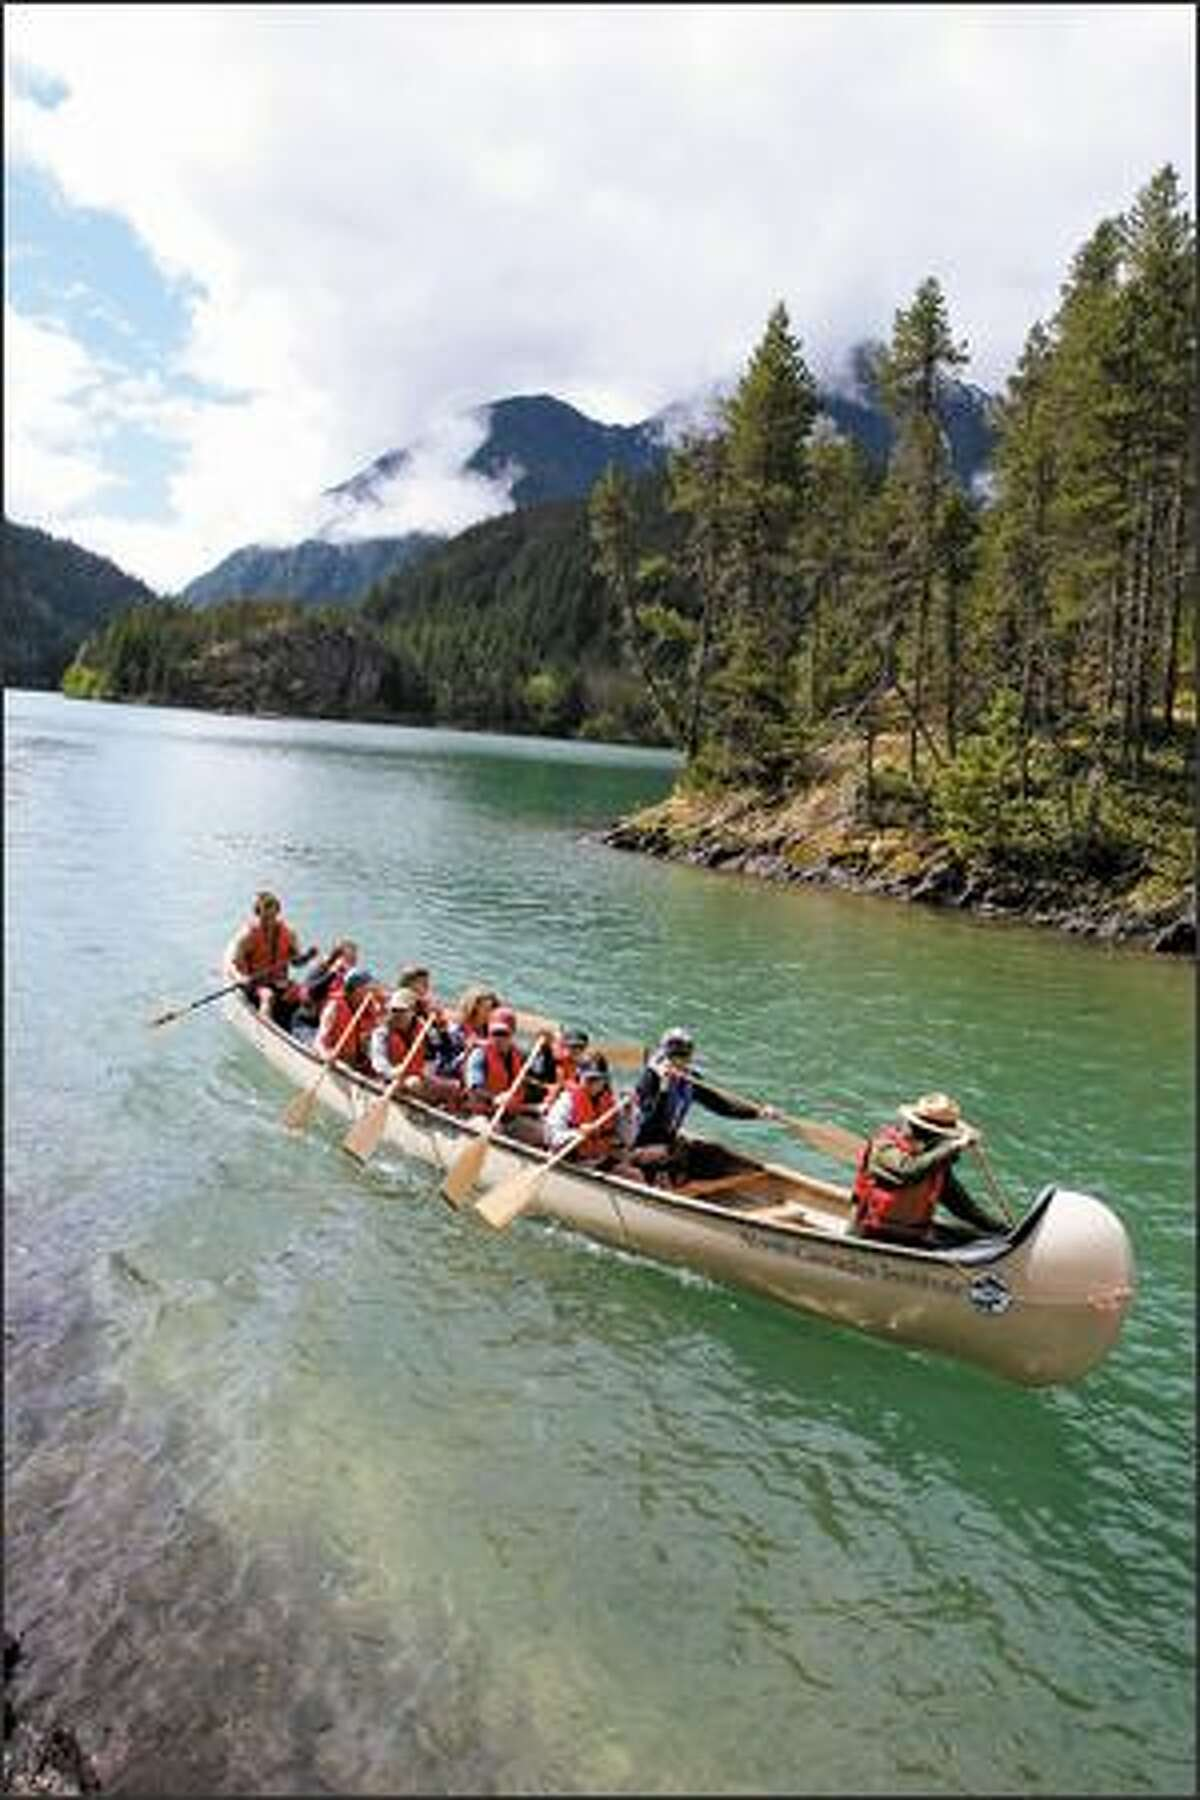 On weekends June through September, the North Cascades Institute offers two-hour guided trips in its 14-person voyager canoe on Diablo Lake.